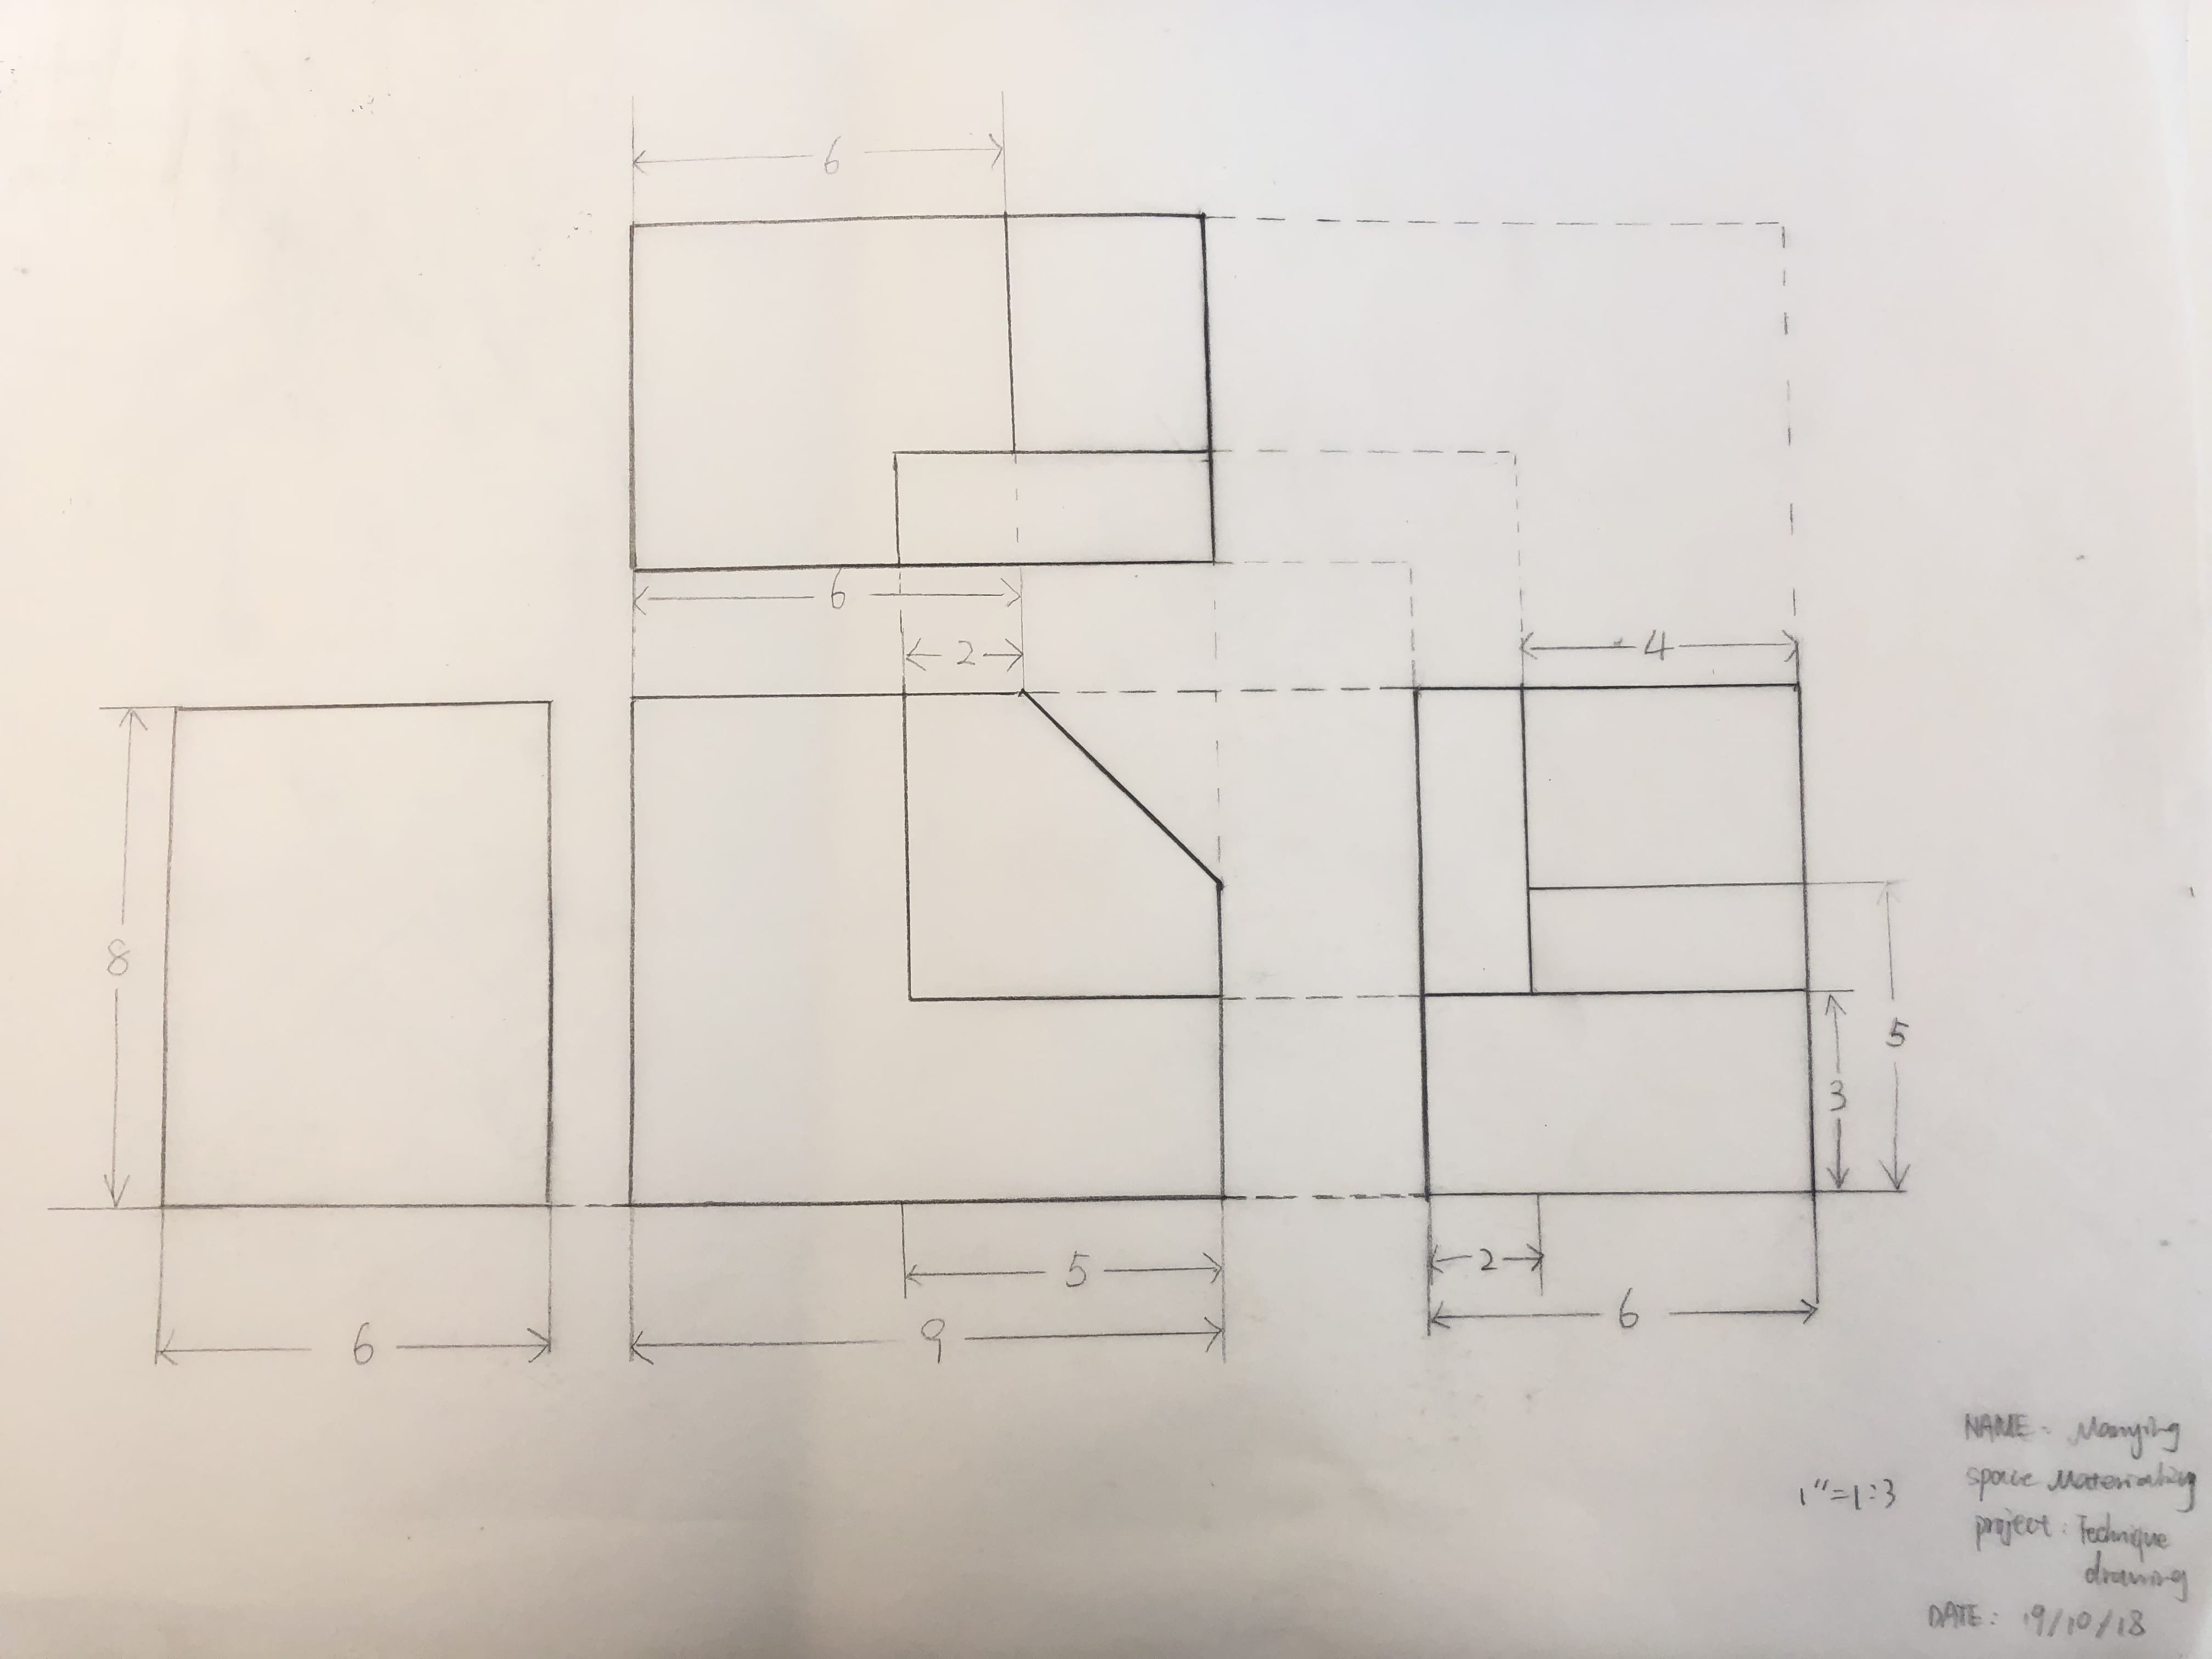 Assignment#11 Technical Drawing